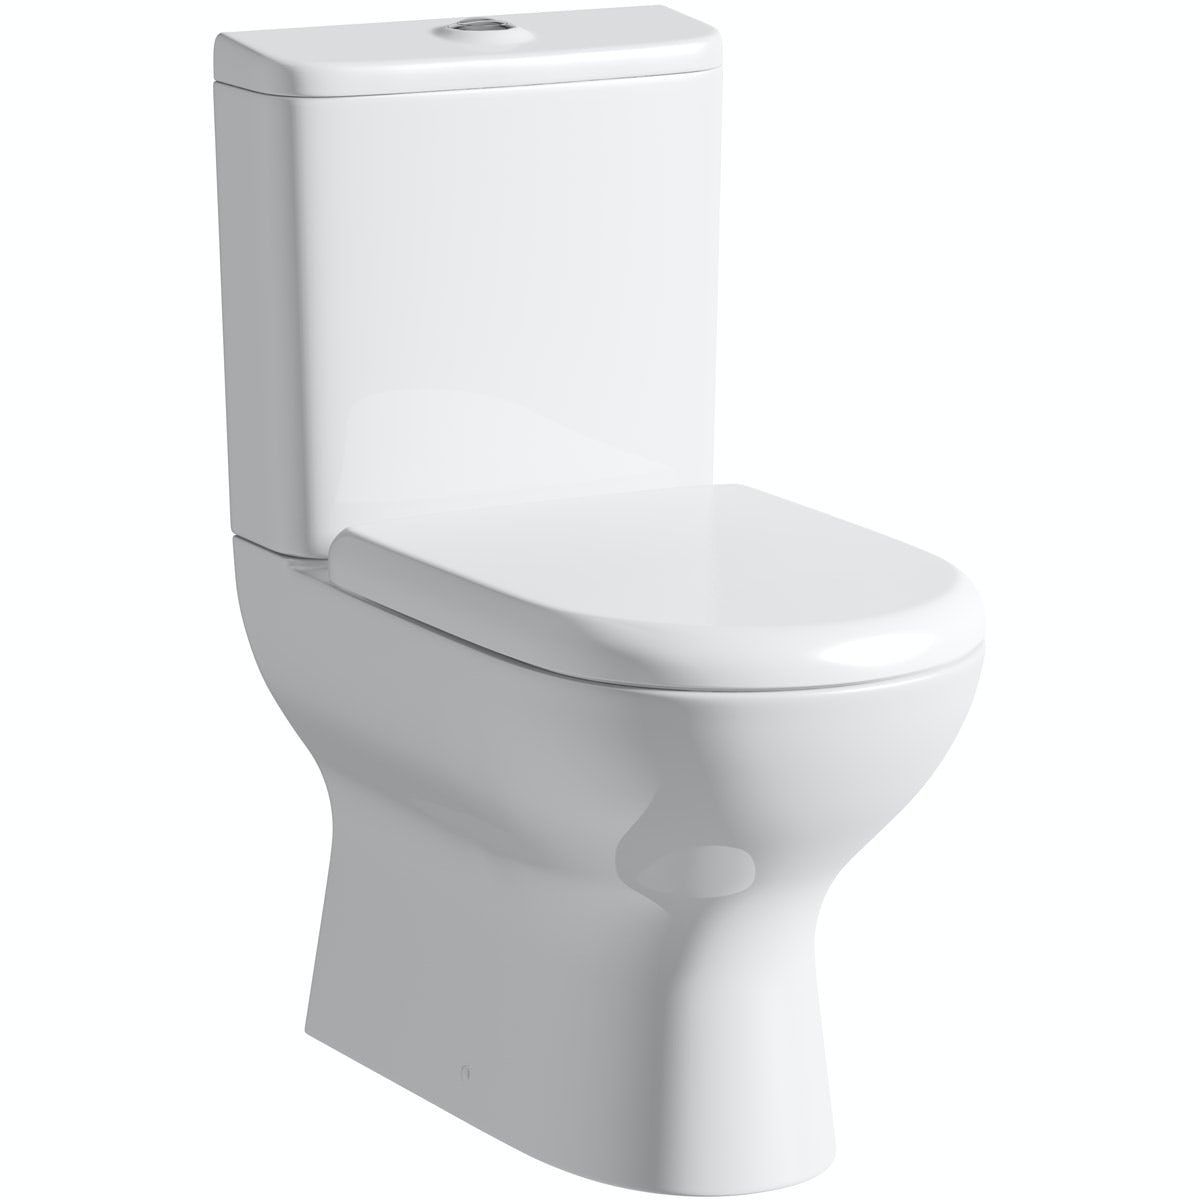 Mode Heath close coupled toilet with soft close toilet seat